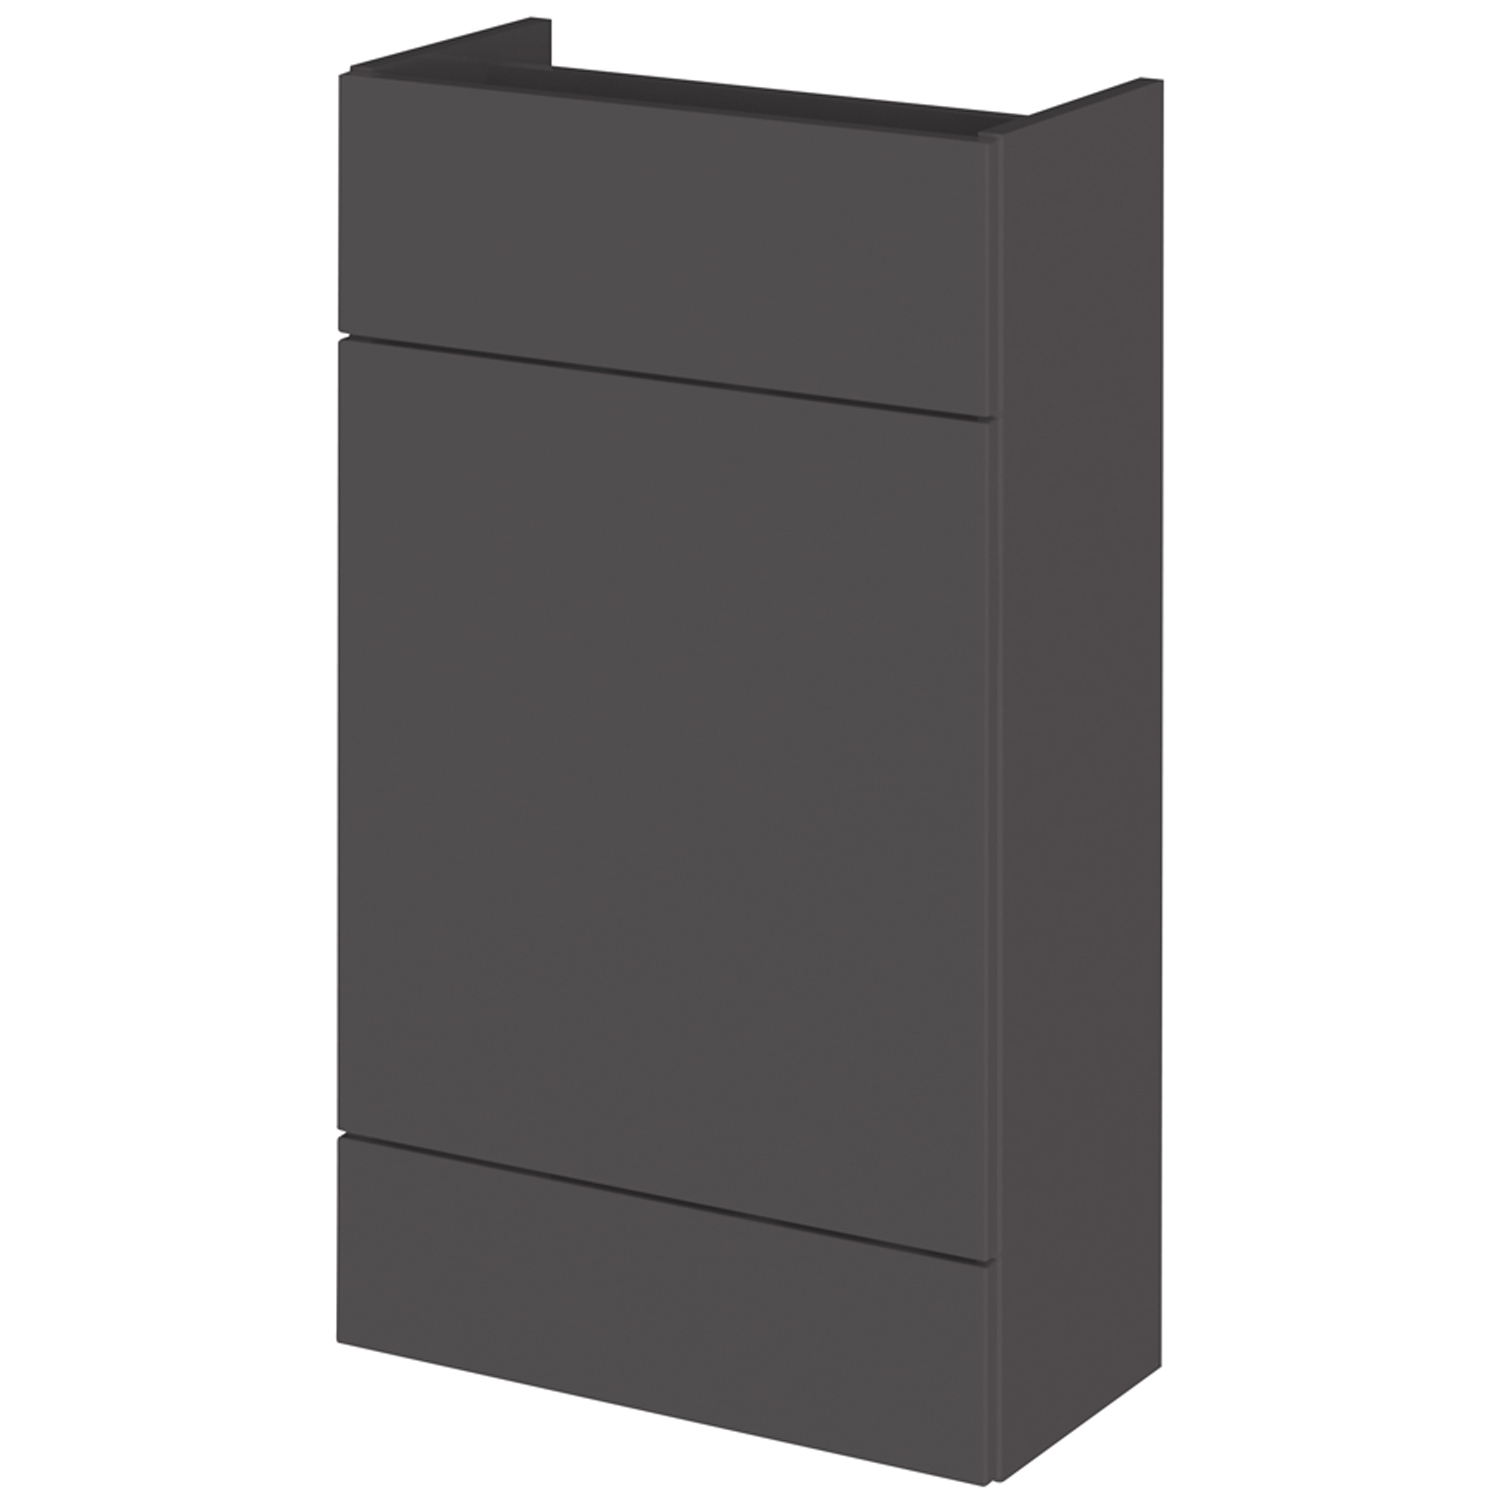 https://www.mepstock.co.uk/admin/images/Single-Fitted_Slimline_500mm_WC_Units-Gloss-Grey_OFF947.jpg